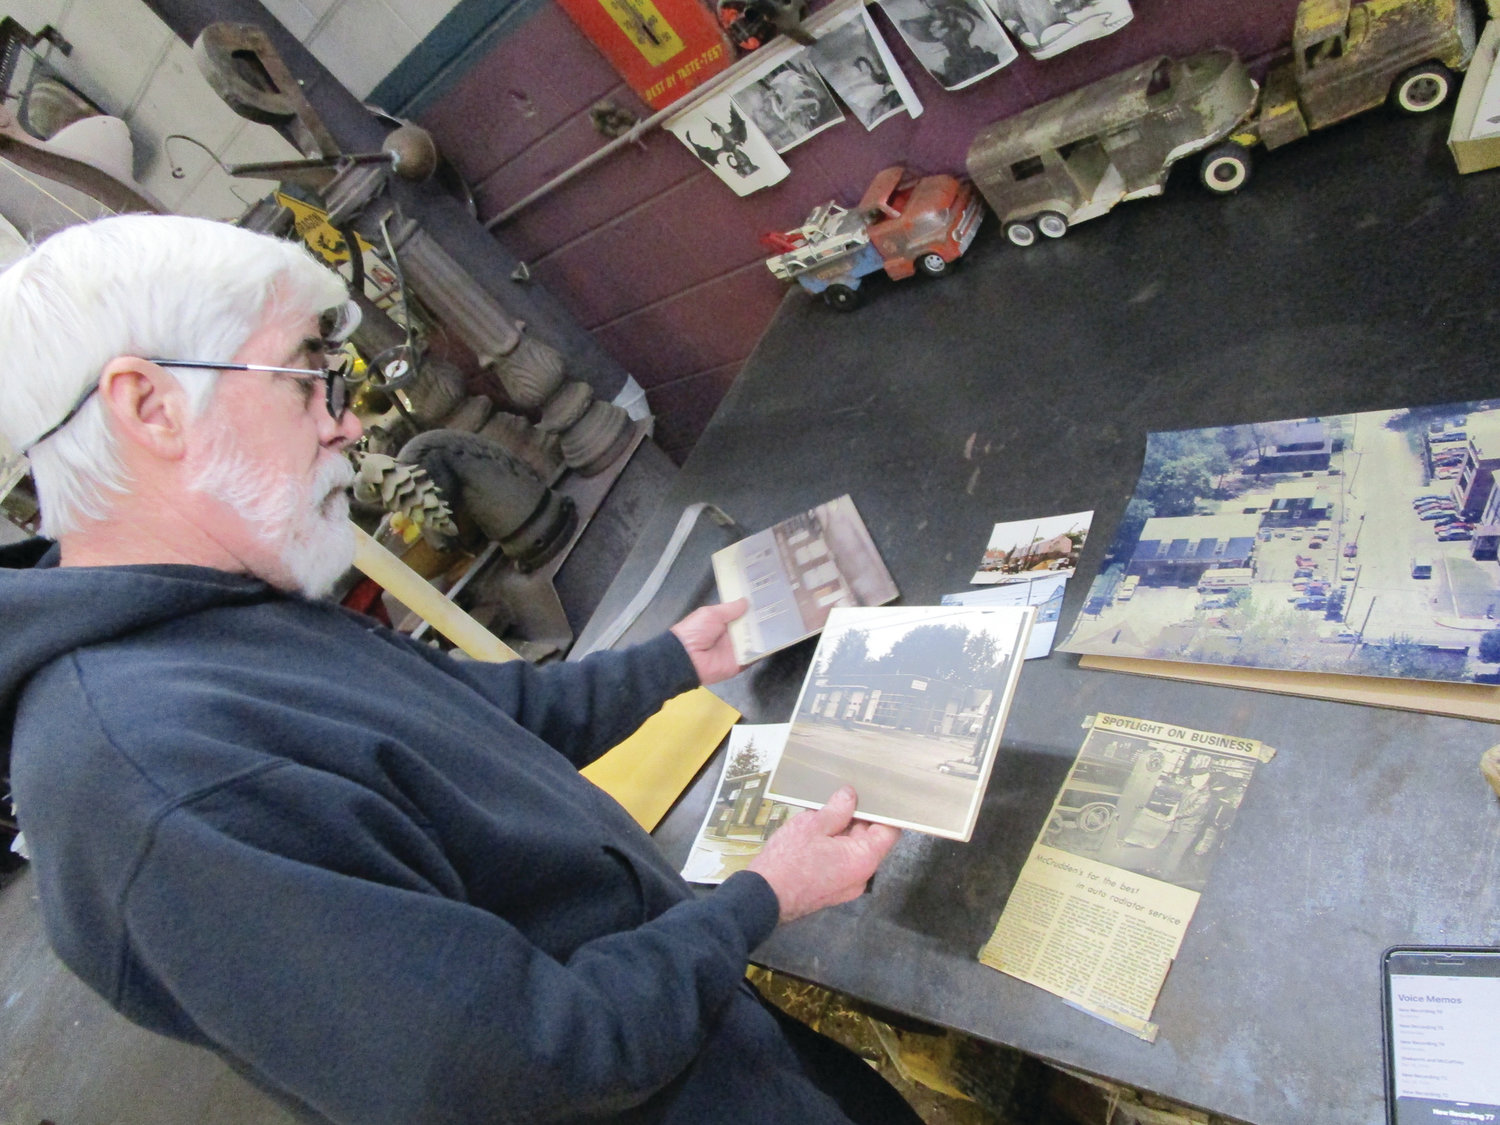 YEARS OF MEMORIES: Kevin McCrudden looks over images and newspaper clippings from the business's past during a Tuesday interview at his West Shore Road shop.